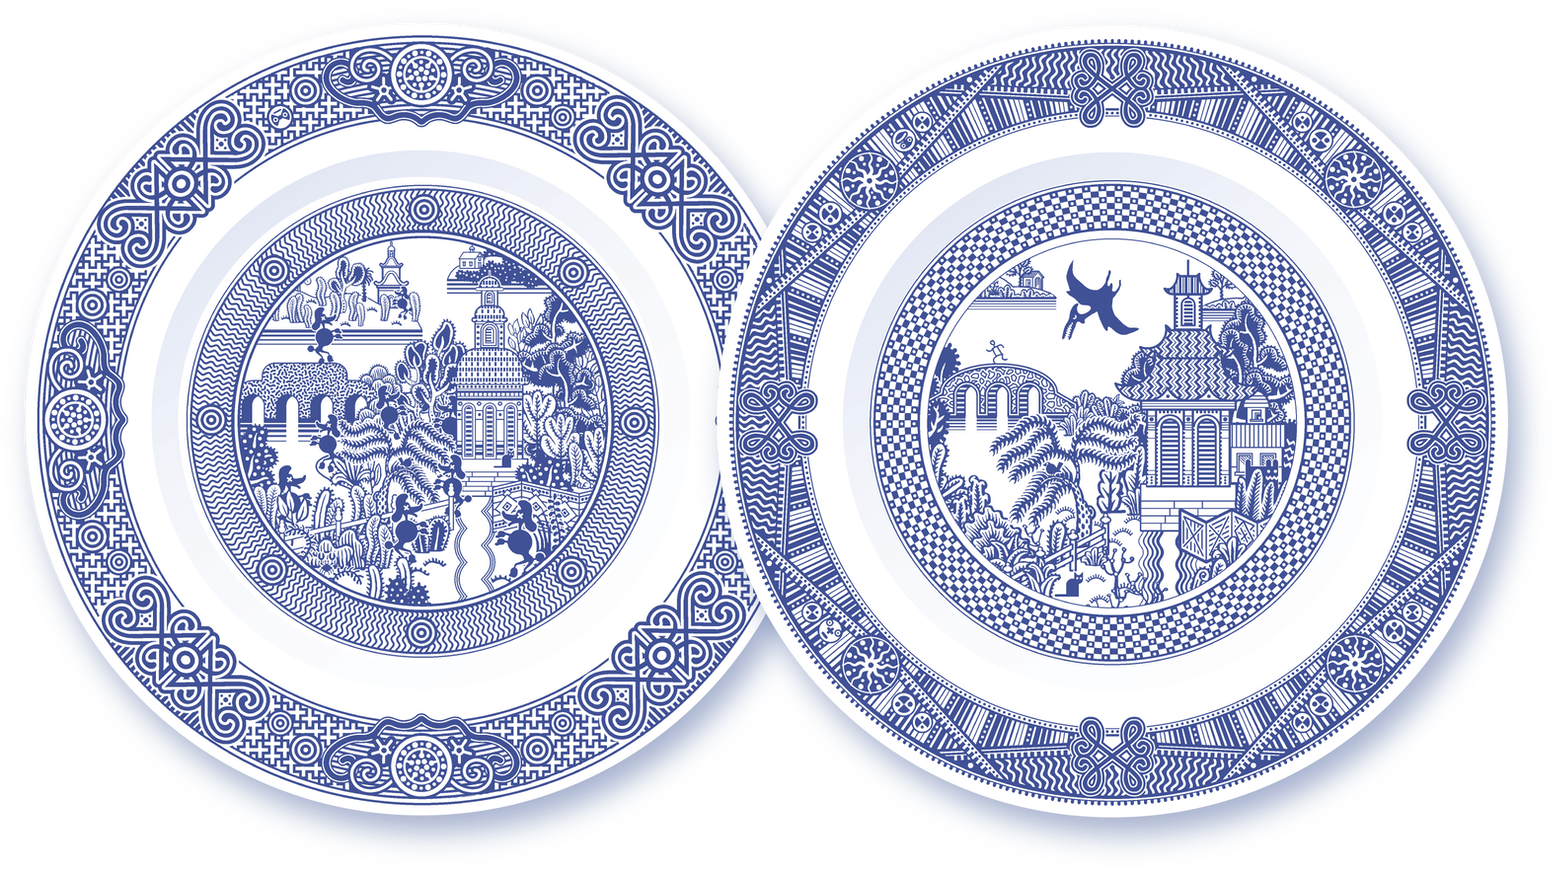 Zombie poodles and pterodactyl add unexpected excitement to traditional  porcelain dinner plates.